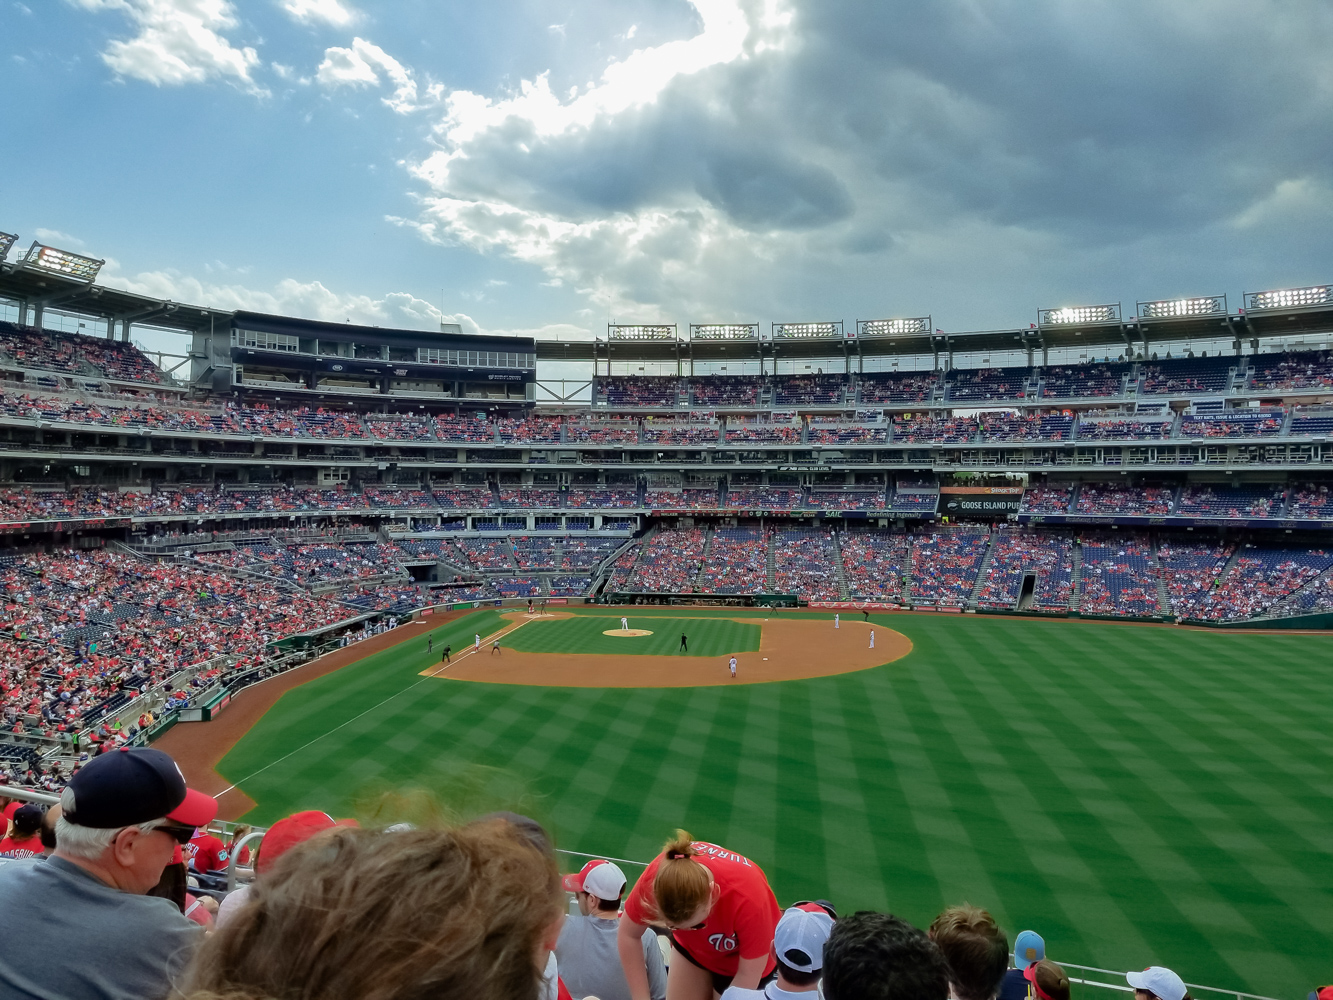 washington nationals baseball team_Stadium view from upper deck